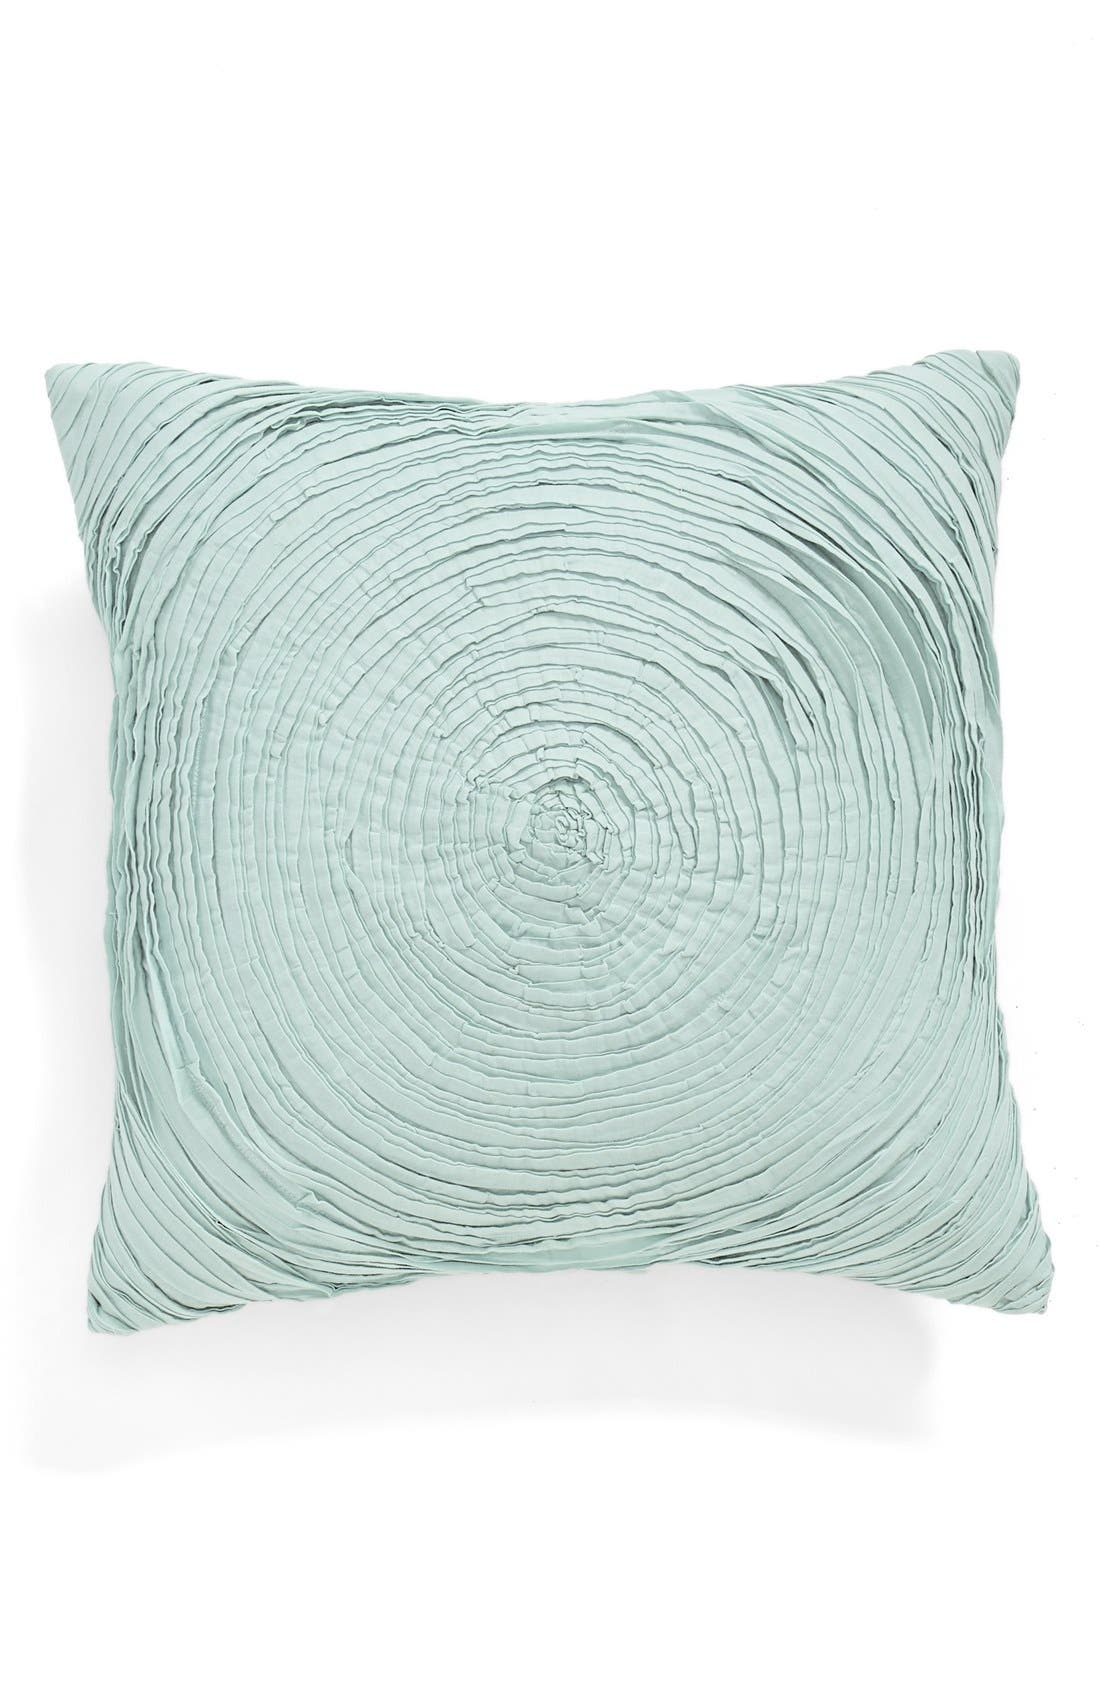 'Full Bloom' Accent Pillow,                             Main thumbnail 1, color,                             440